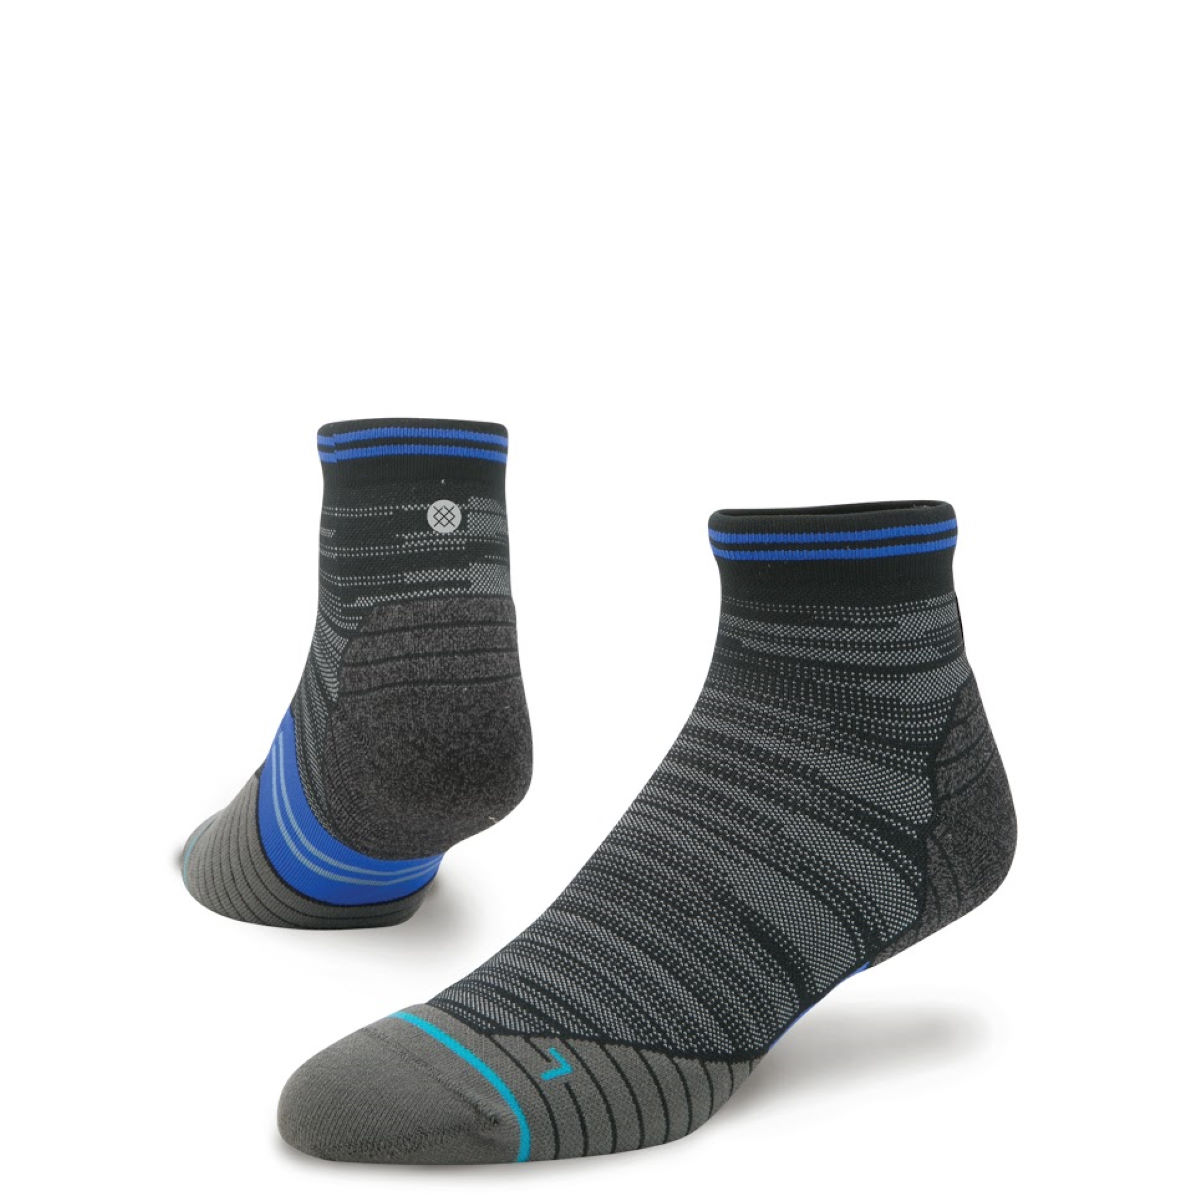 Calcetines Stance Uncommon Solids (caña 3/4) - Calcetines